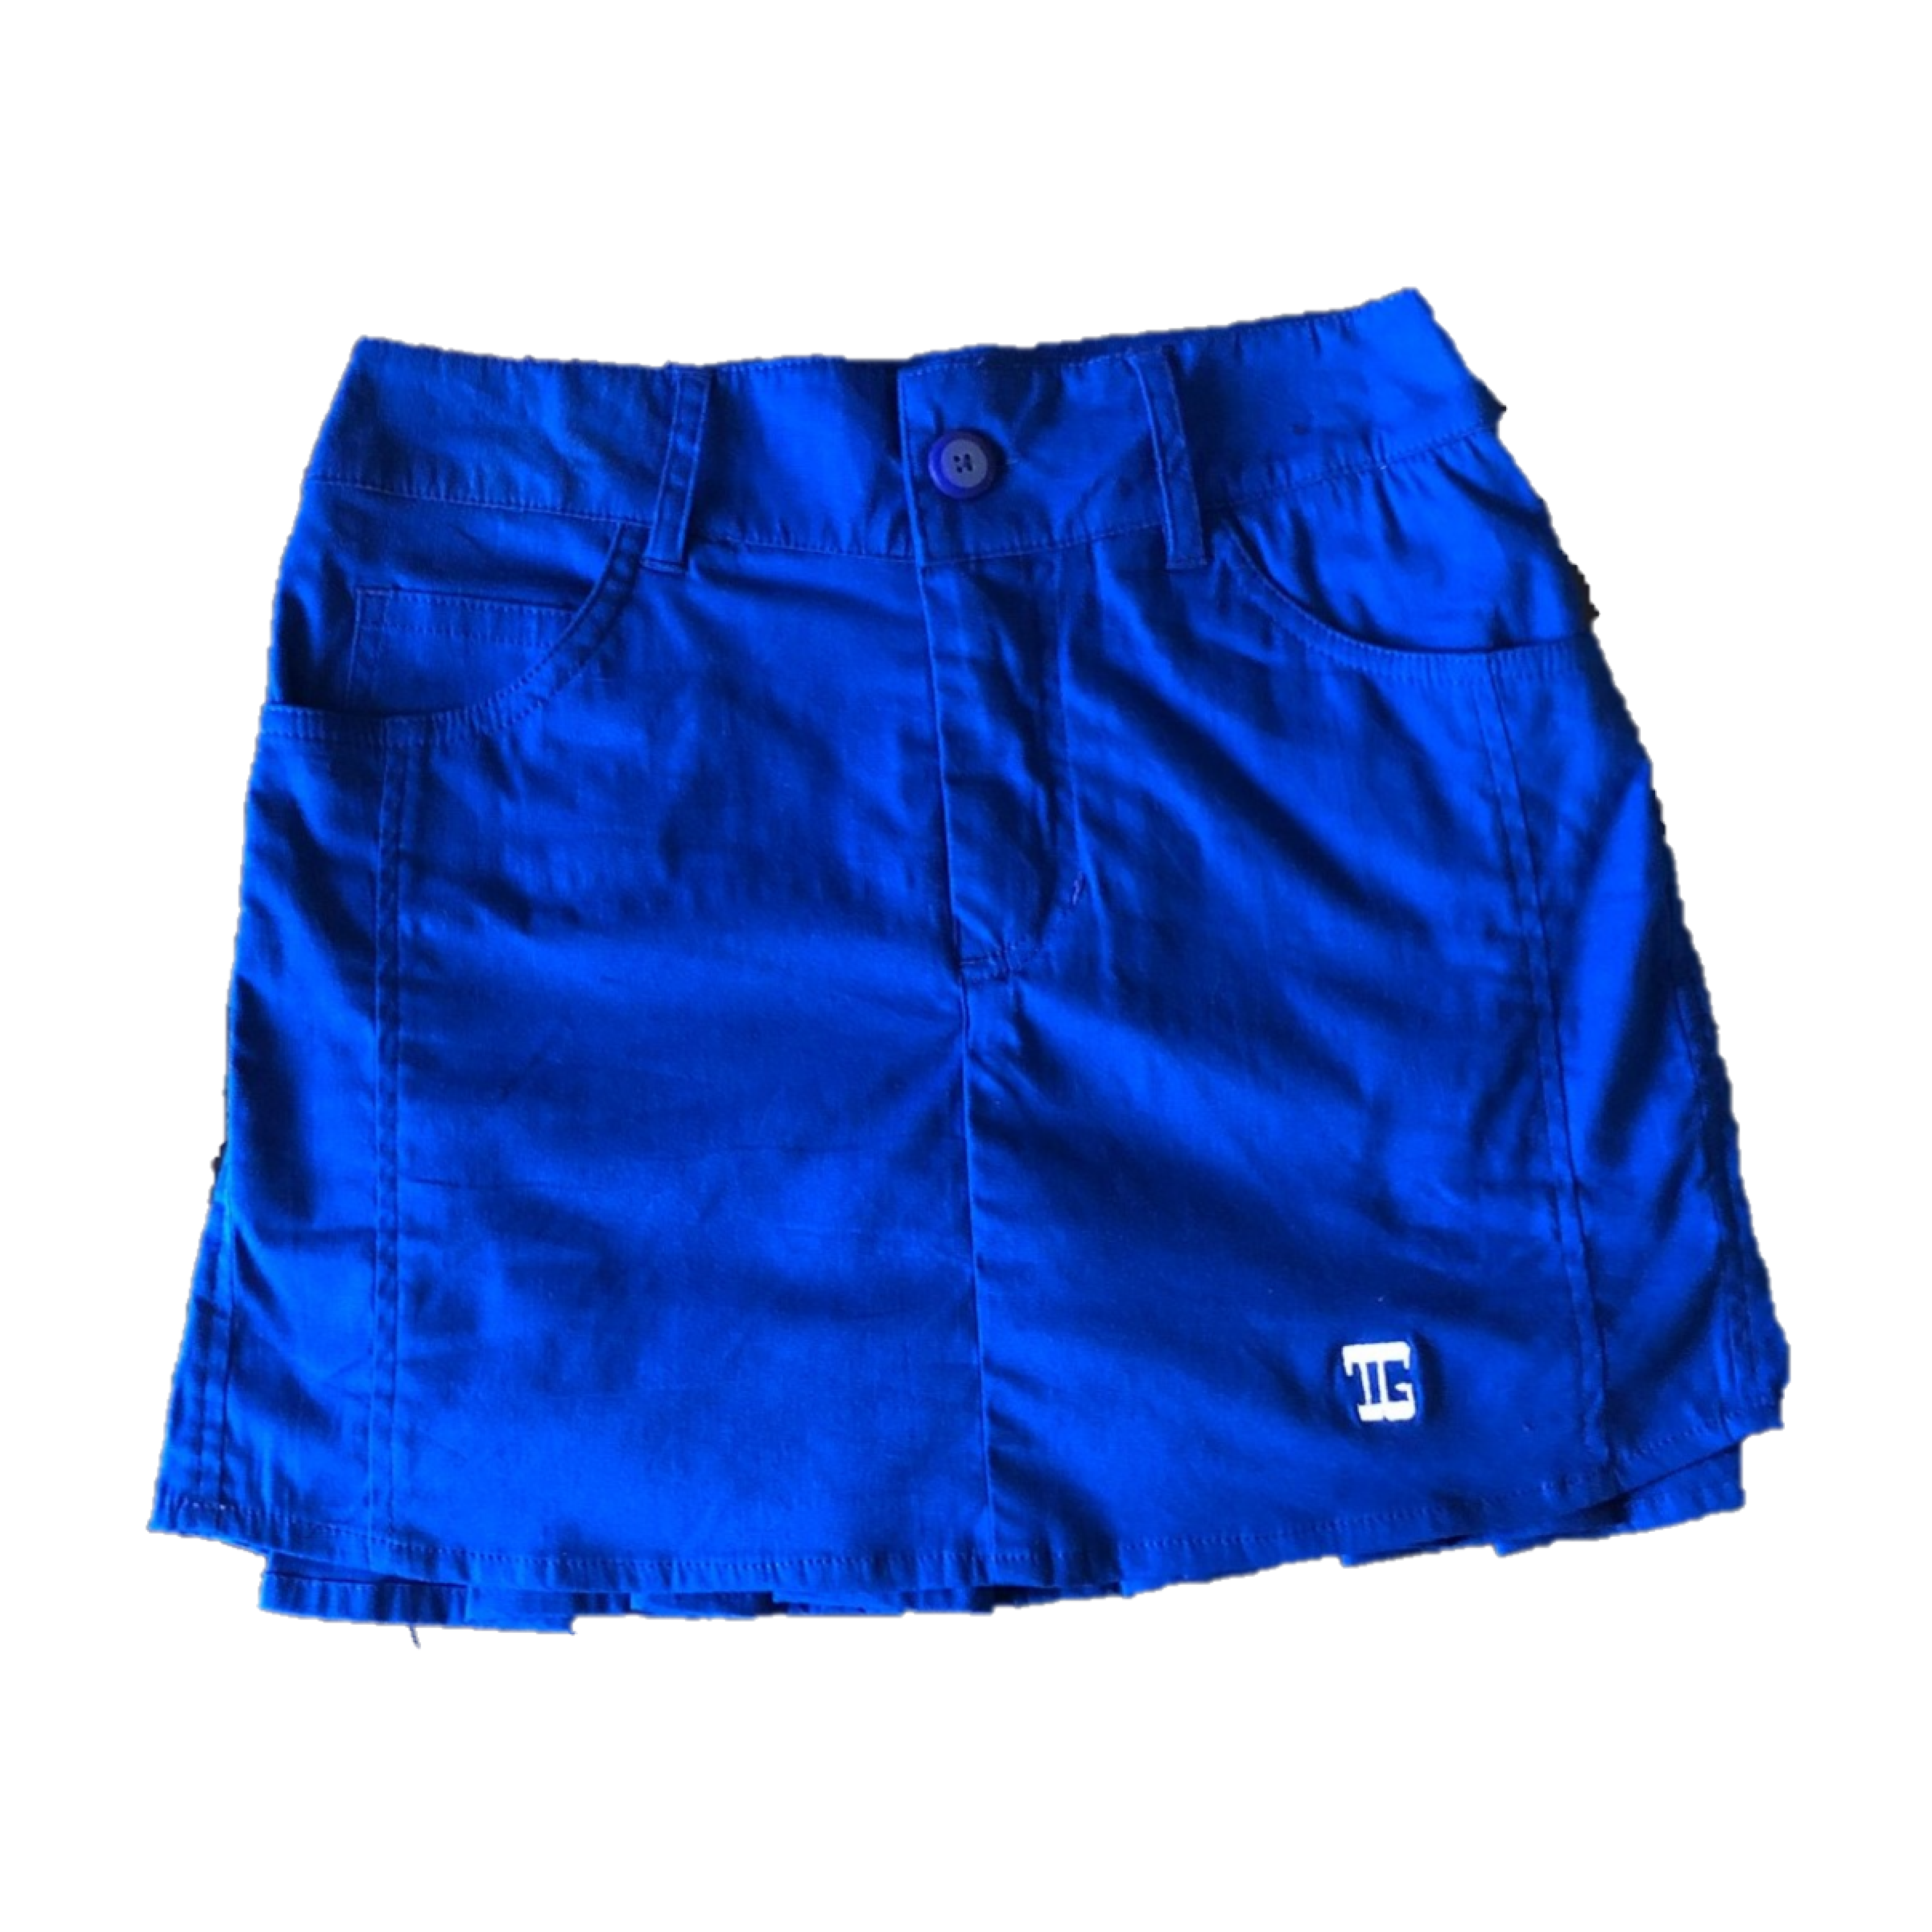 LS-044H     Skirt Royale Blue With 2 Stitchead Round Front Pocket & Pleated Rear Panel